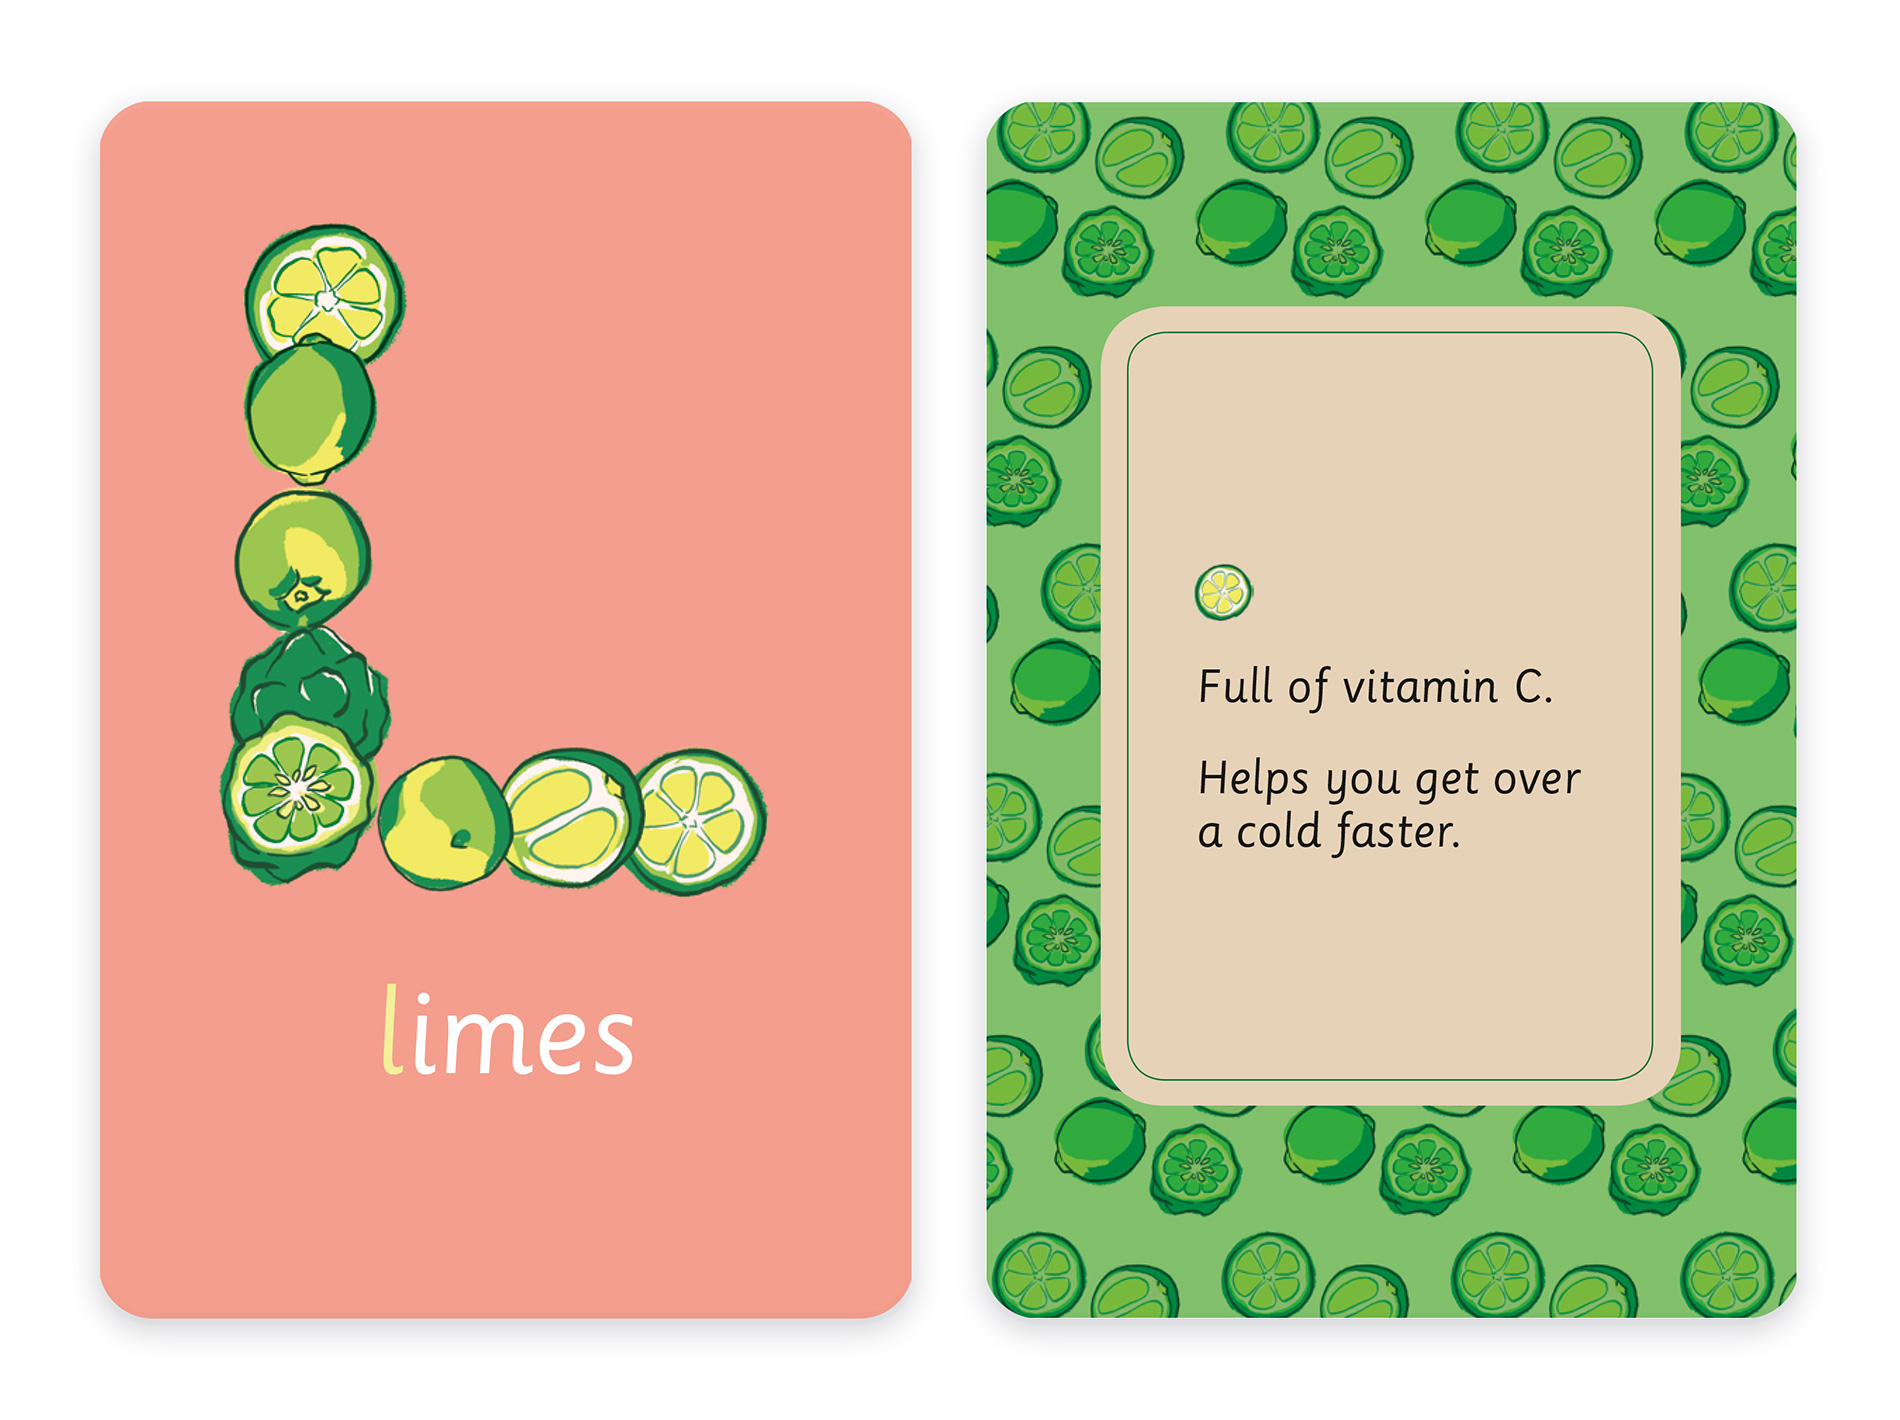 teaching-resource-flashcard-pattern-education-illustrations-lime-by-fiona-dunnett.jpg